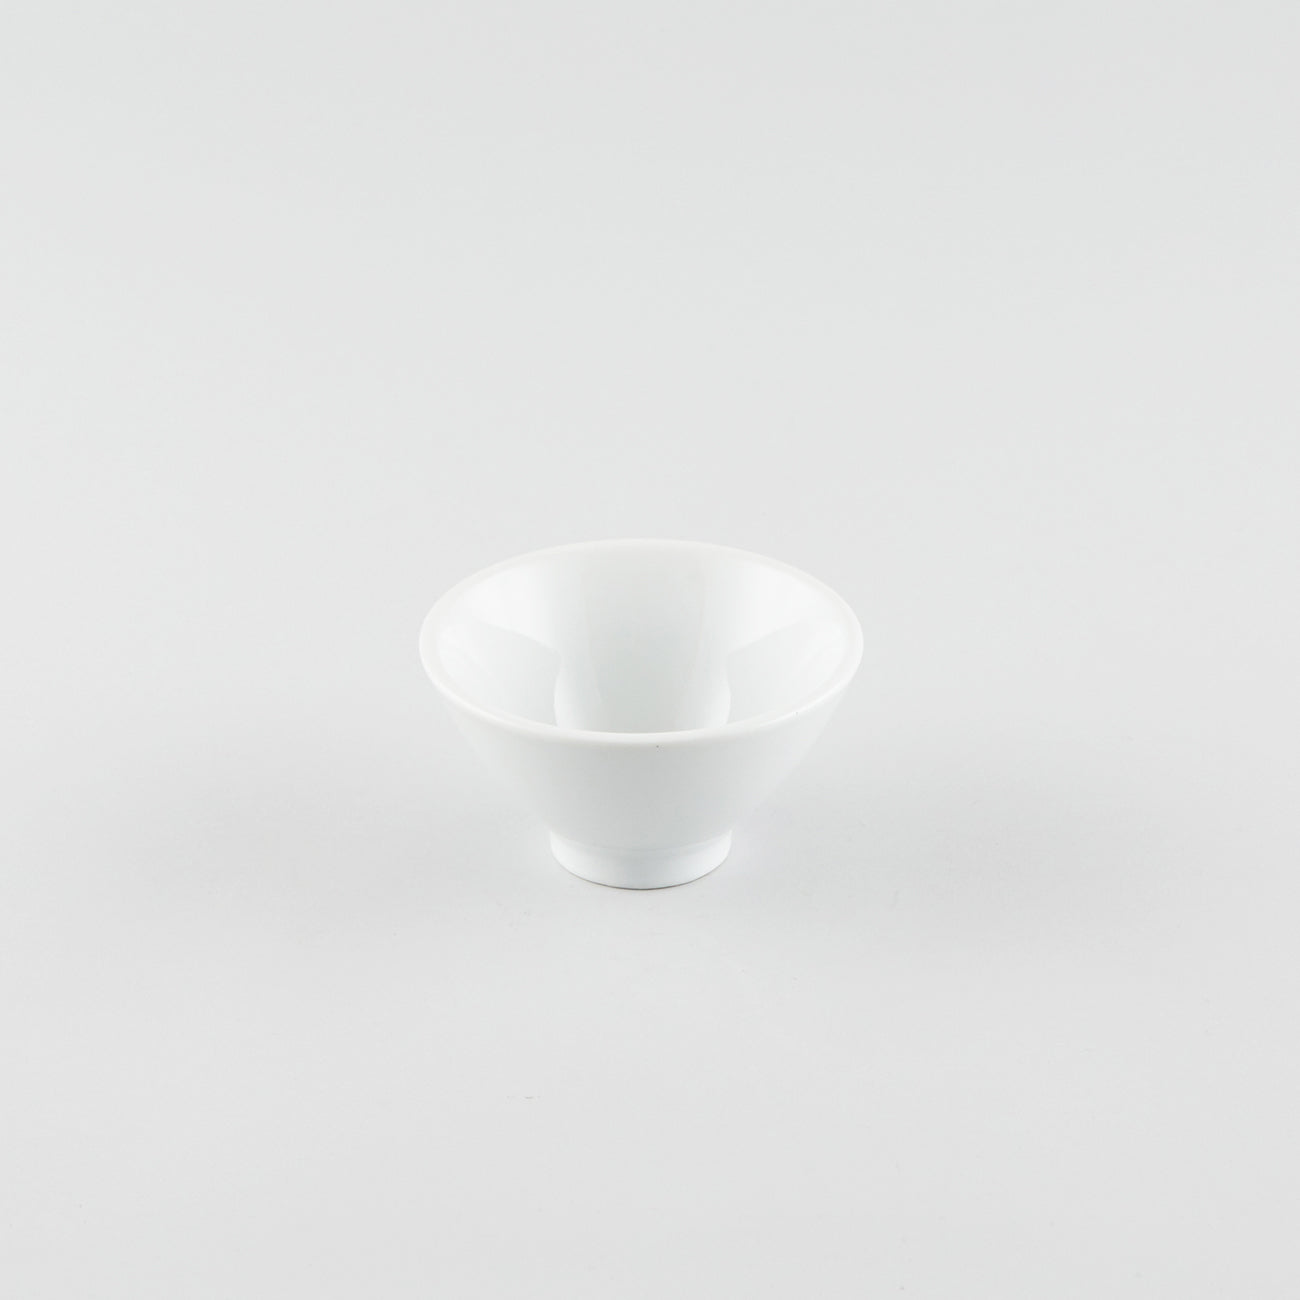 V-Shape Rice Bowl - White